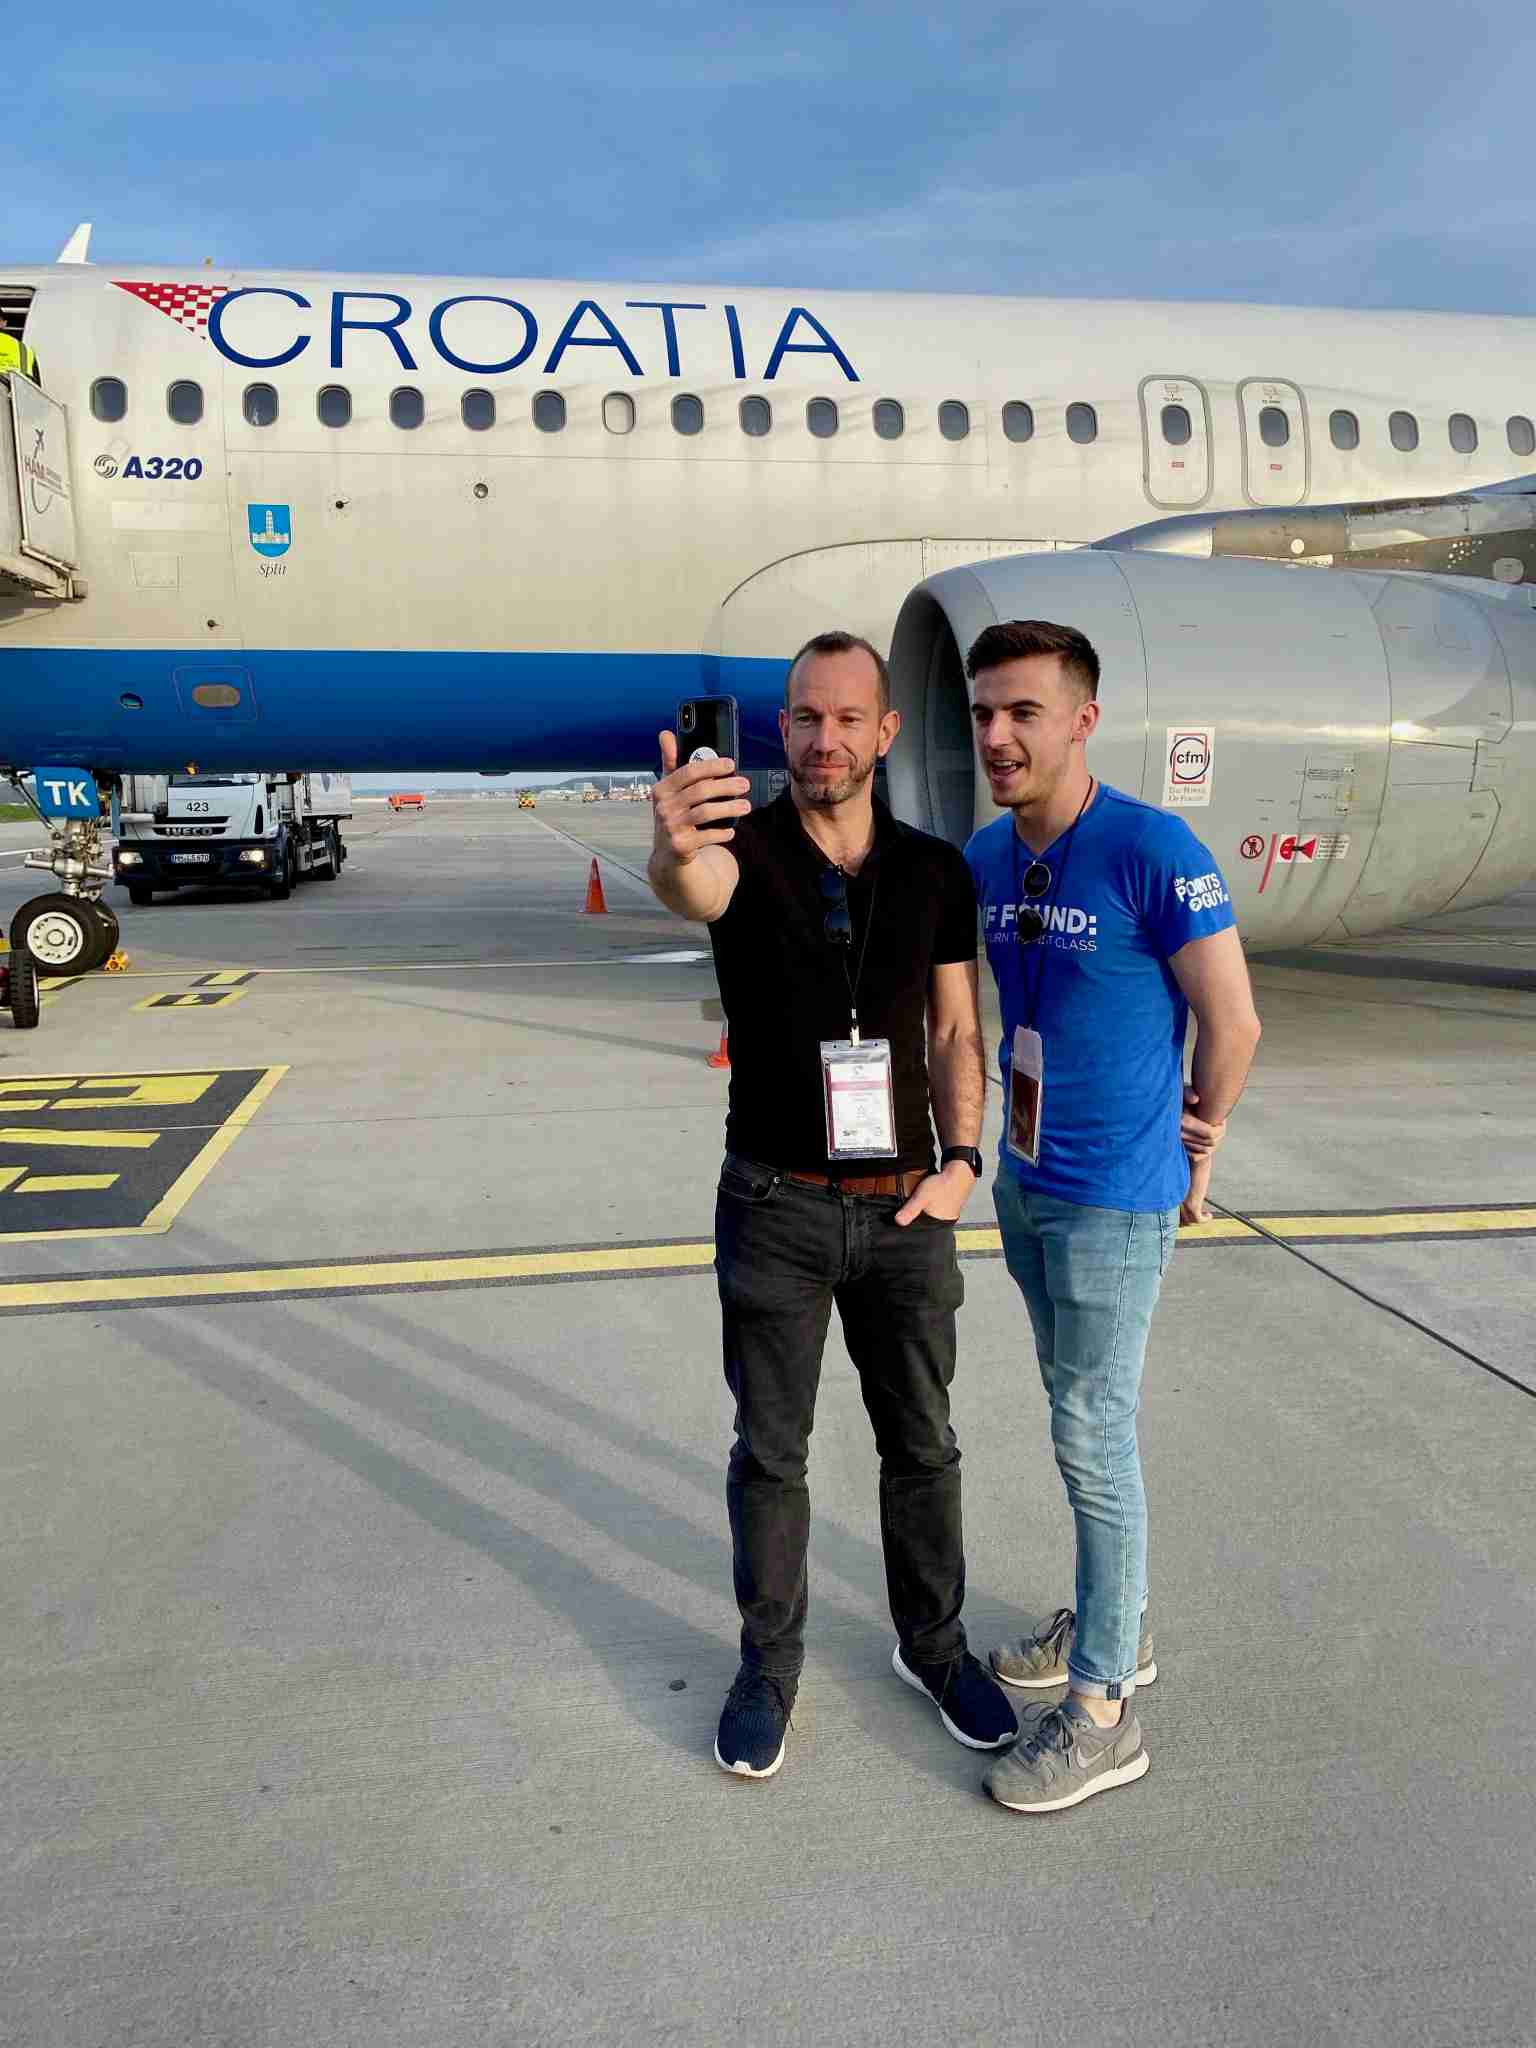 TPG UK competition winner Peter Brownless and Christian Kramer geeking over the Croatia Airlines A320 - Image by Christian Kramer / The Points Guy